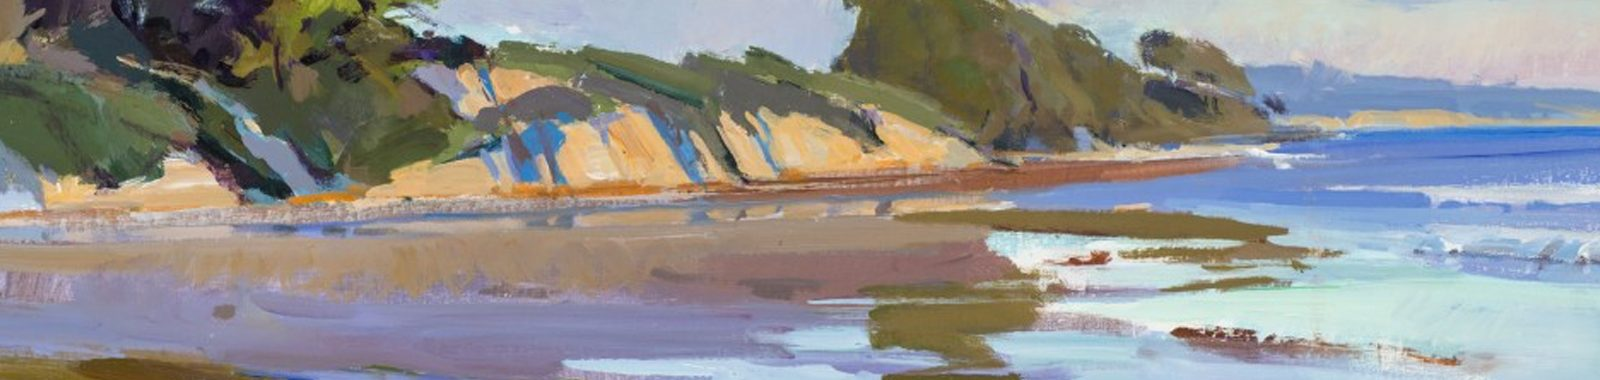 """Goleta Beach King Tide"" by Marcia Burtt"